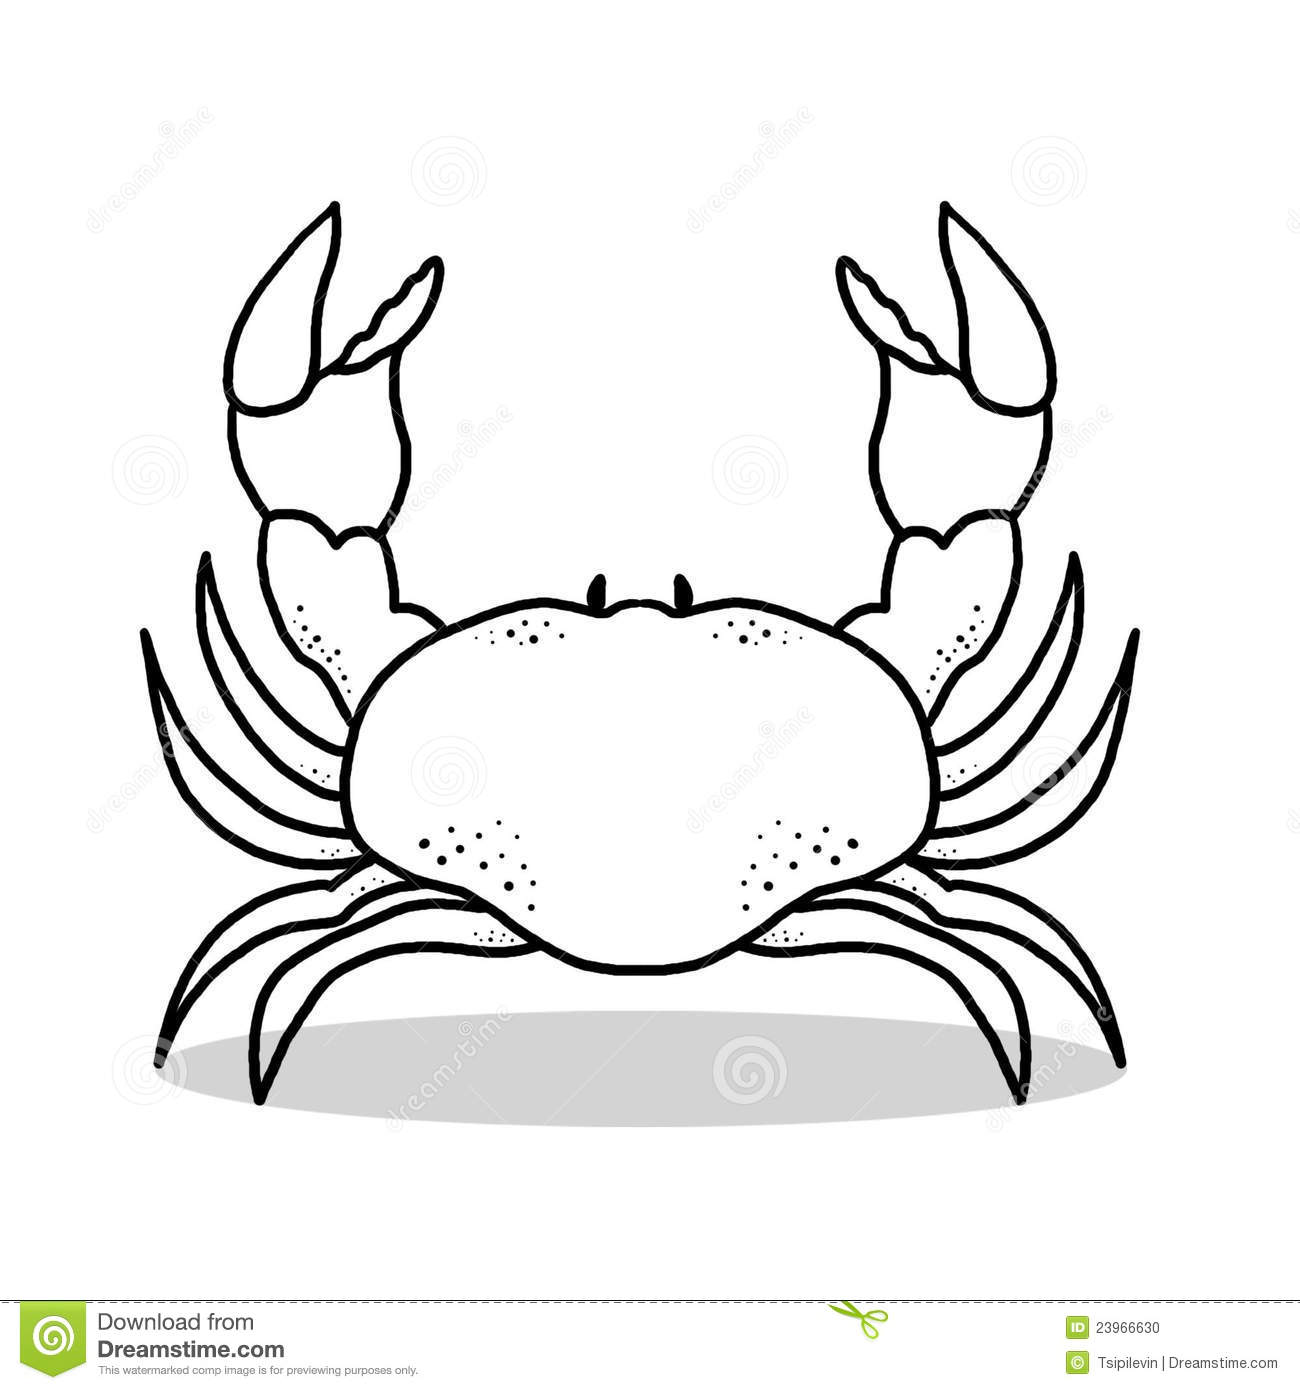 crab outline illustration stock photo image 23966630